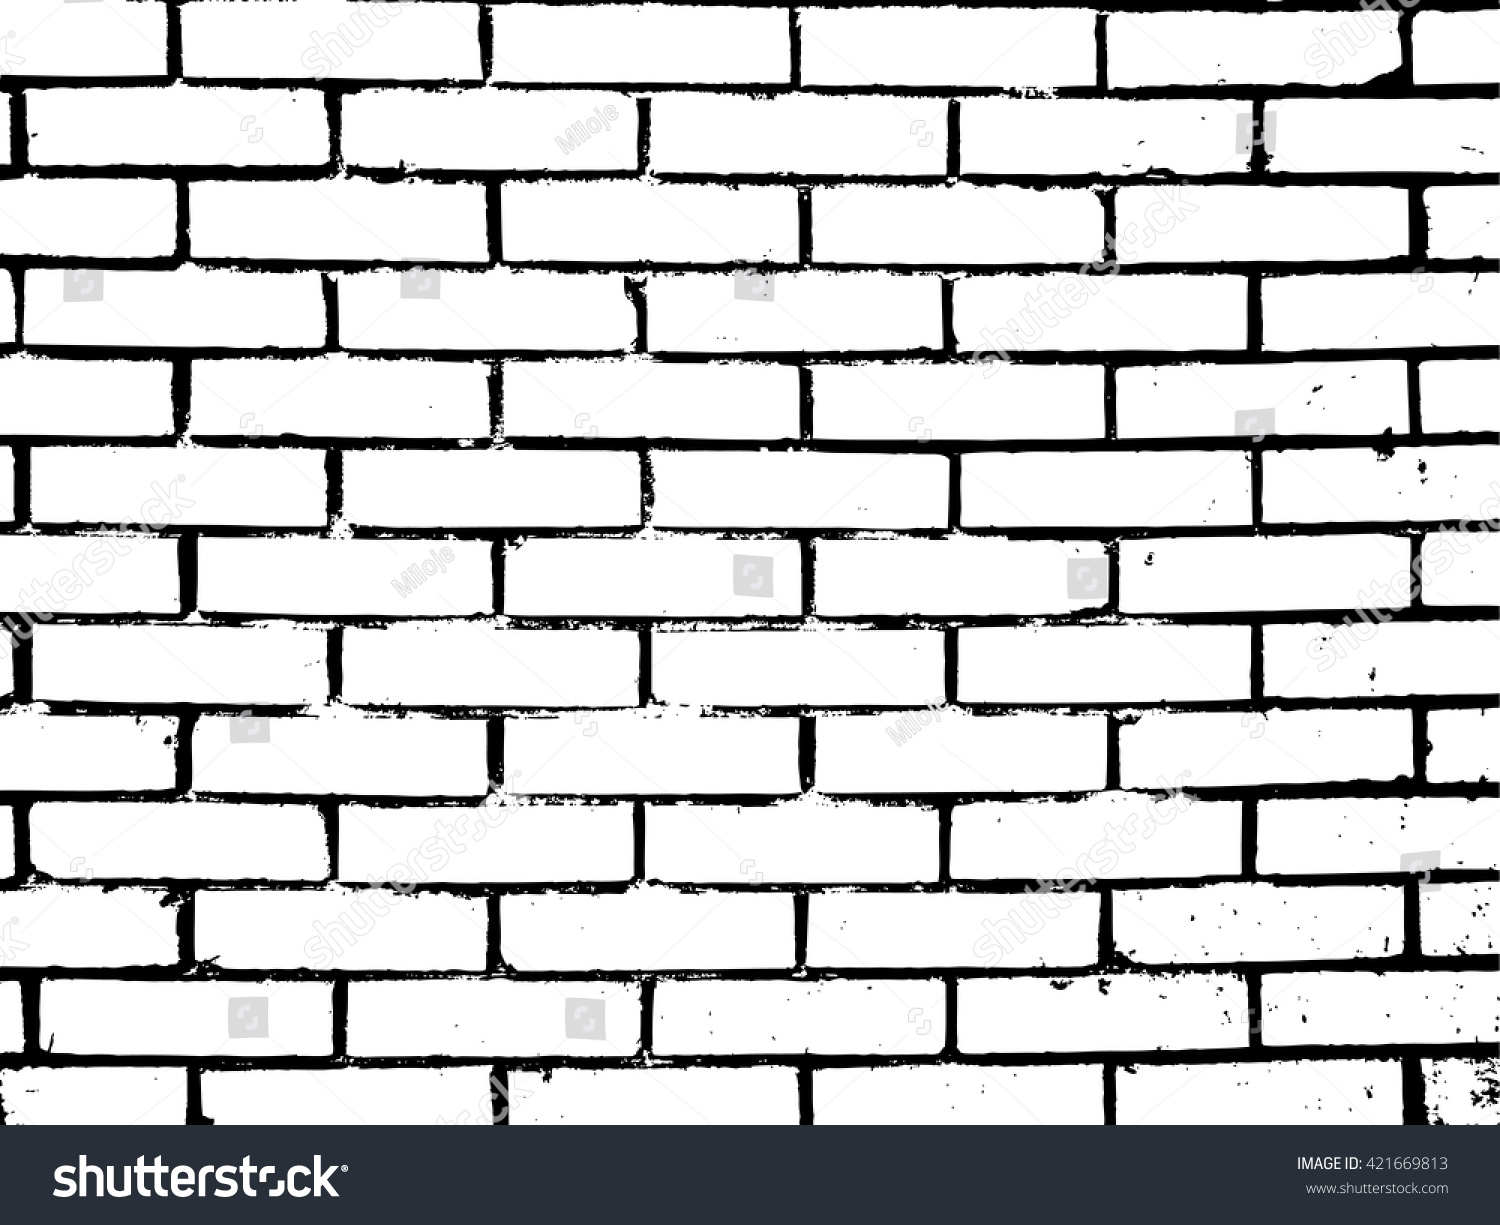 Brick Texture EffectGrunge Wall Background Vector Illustration